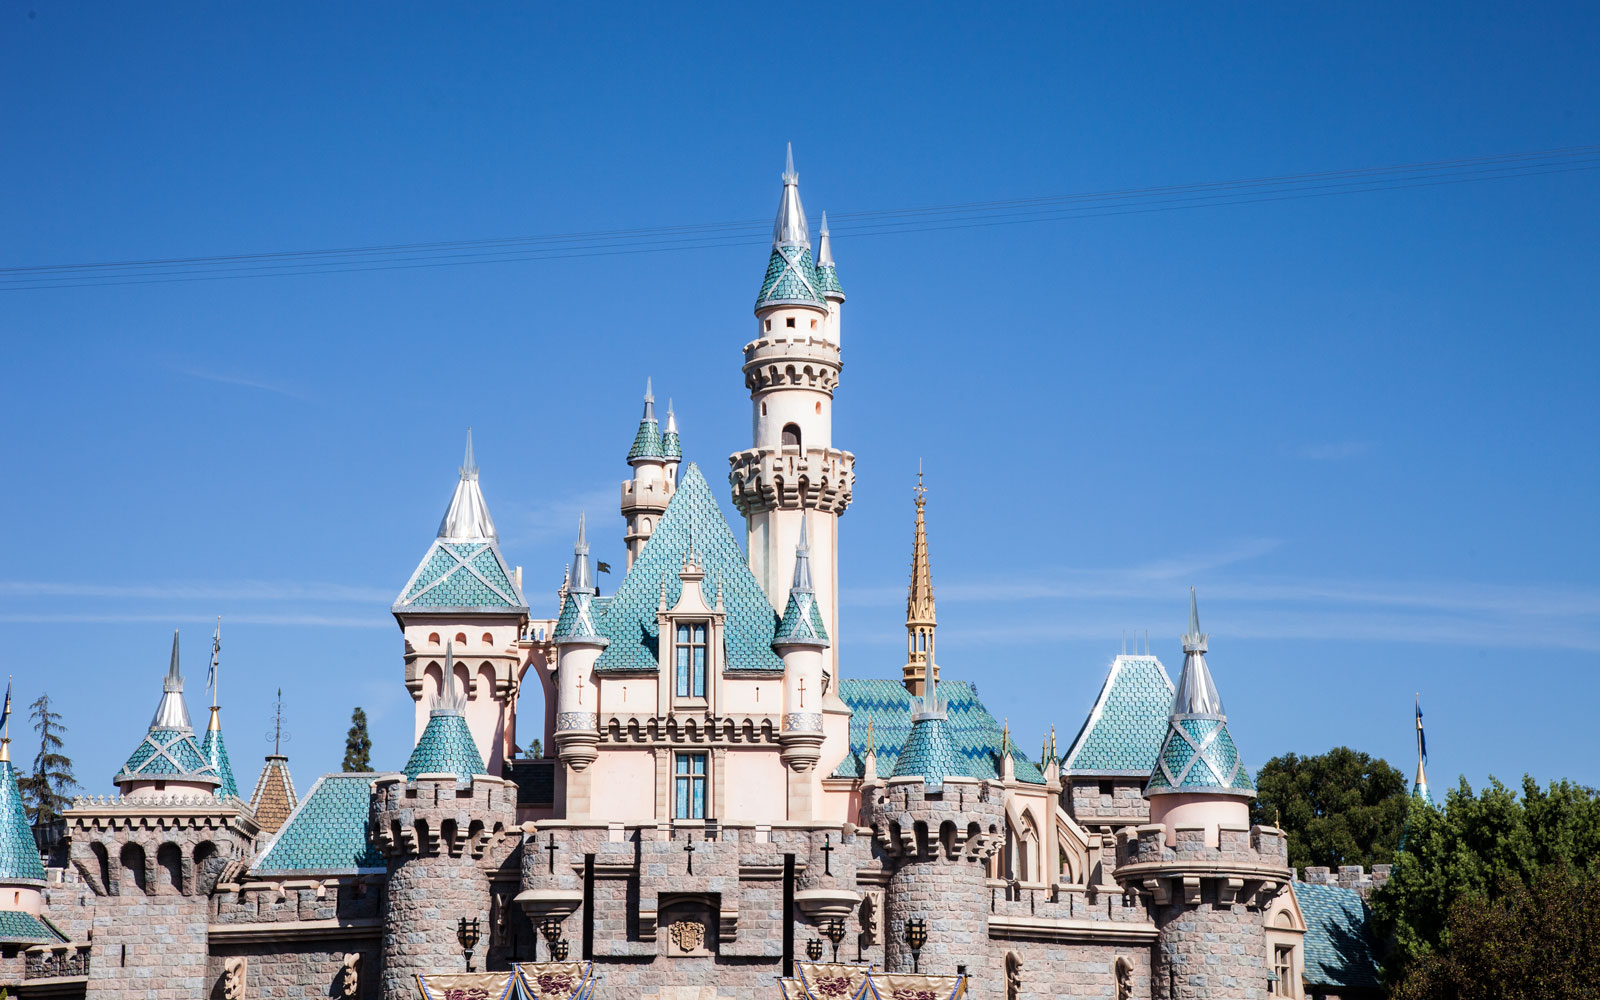 disneyland-california-castle-oneday0117